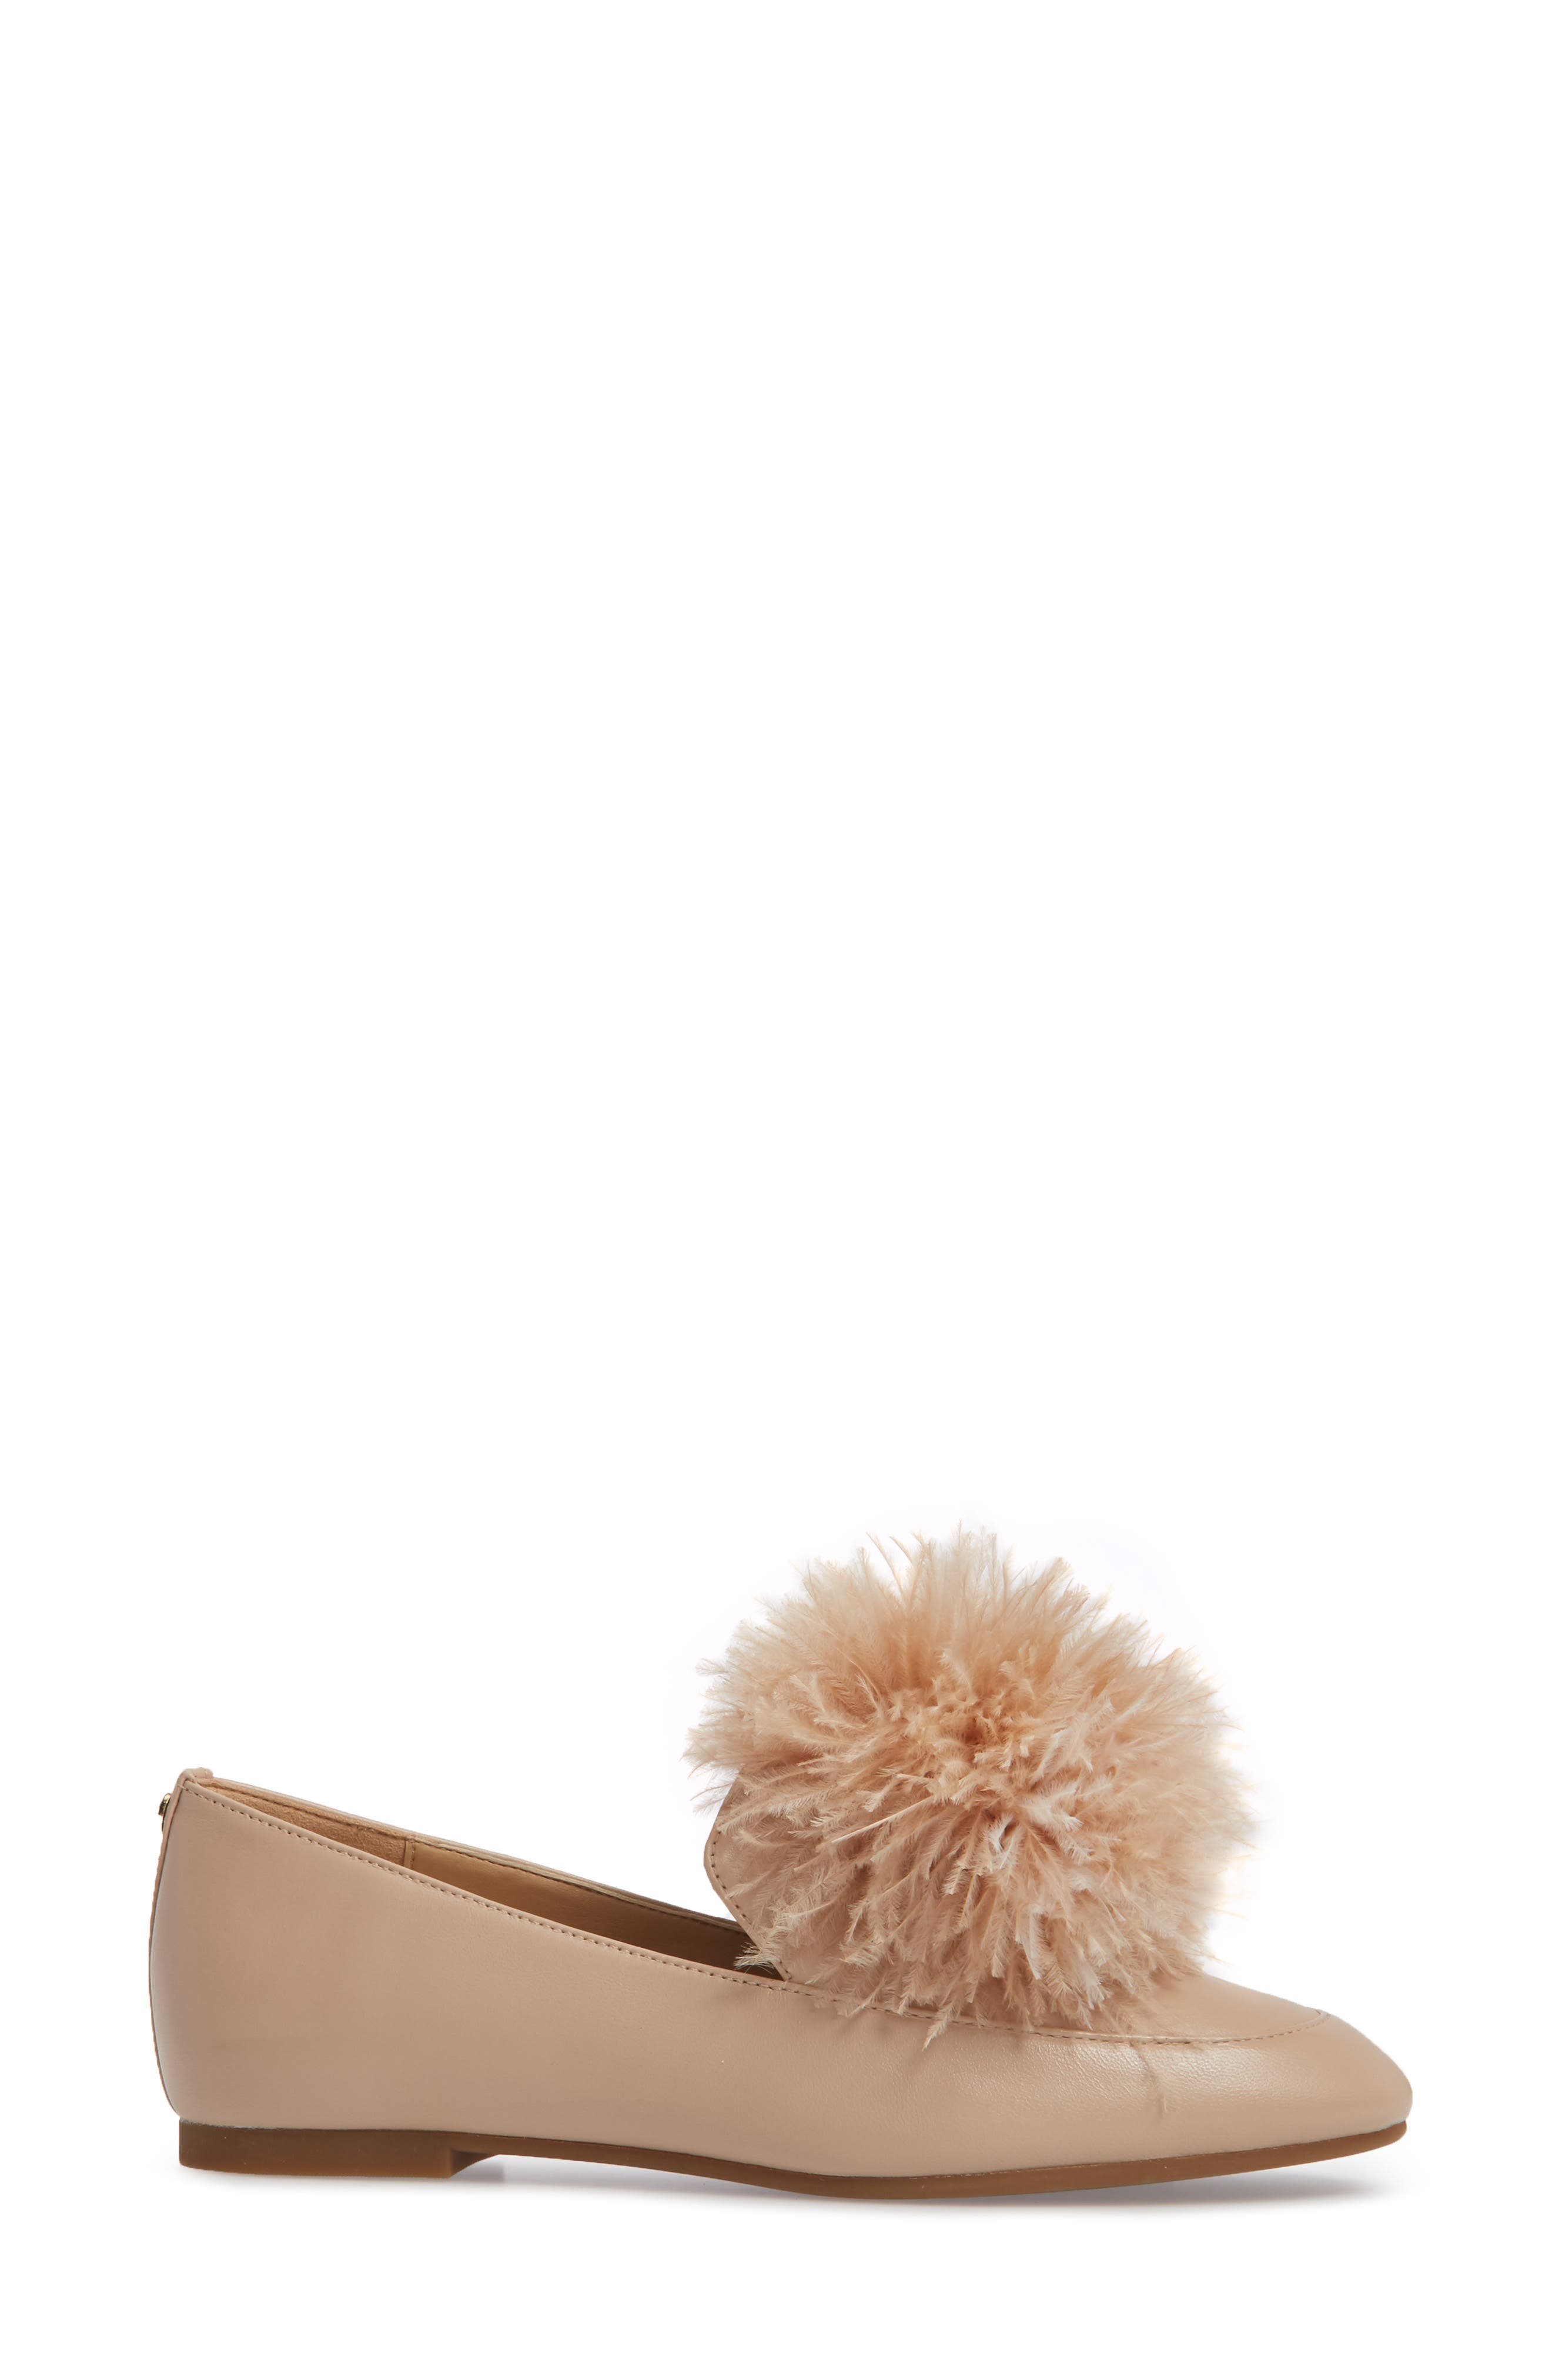 Fara Feather Pom Loafer,                             Alternate thumbnail 3, color,                             Oyster Nappa Leather